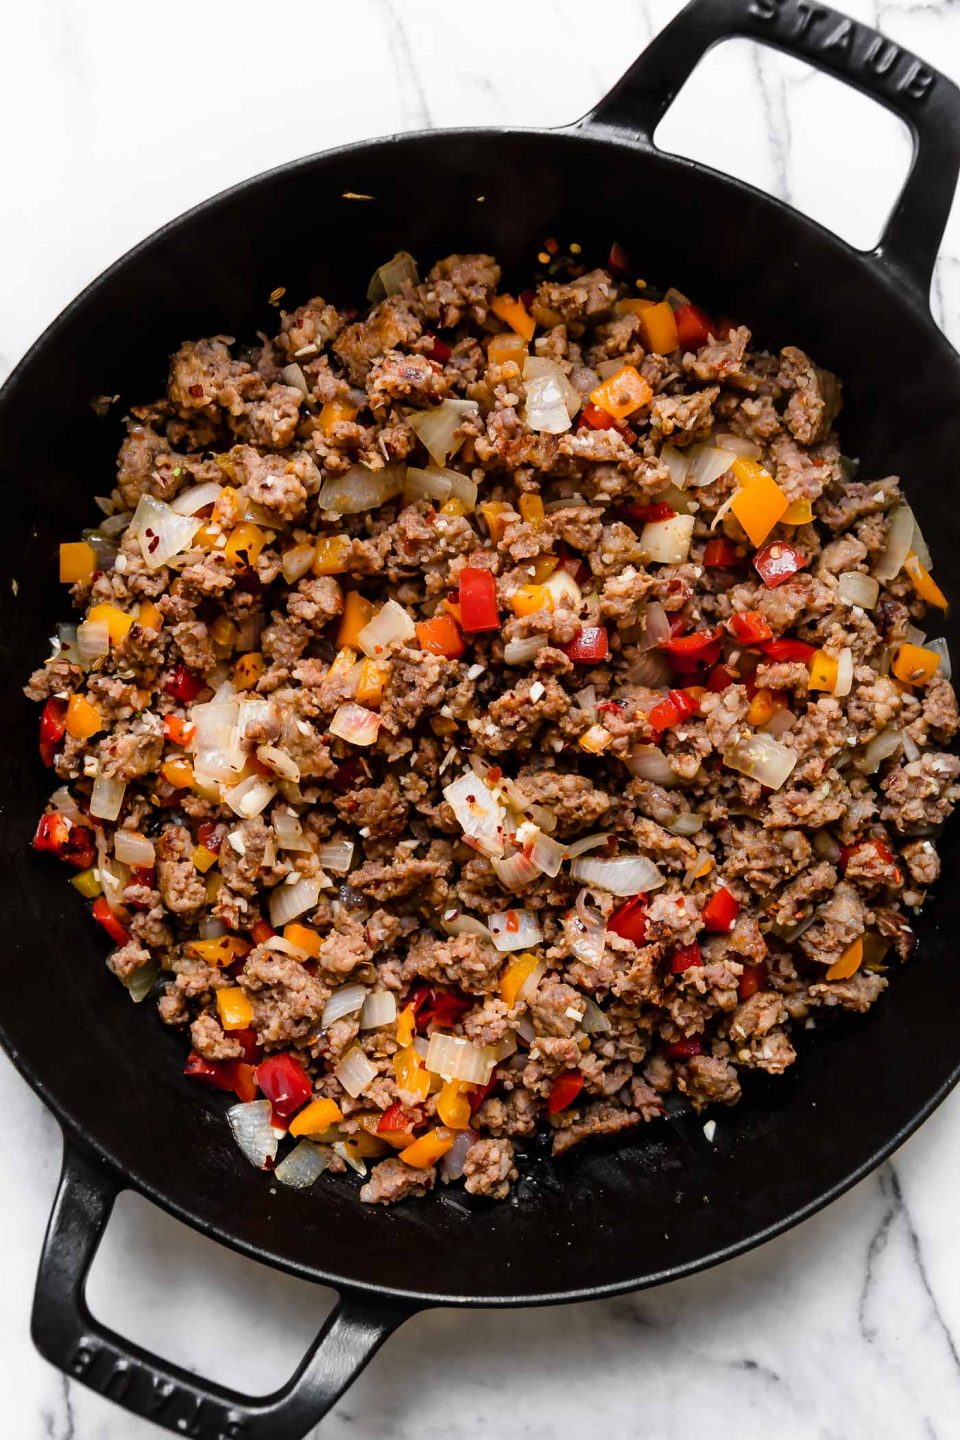 Step 2 of making sausage peppers pasta: browned sausage, bell peppers & onions in large skillet.